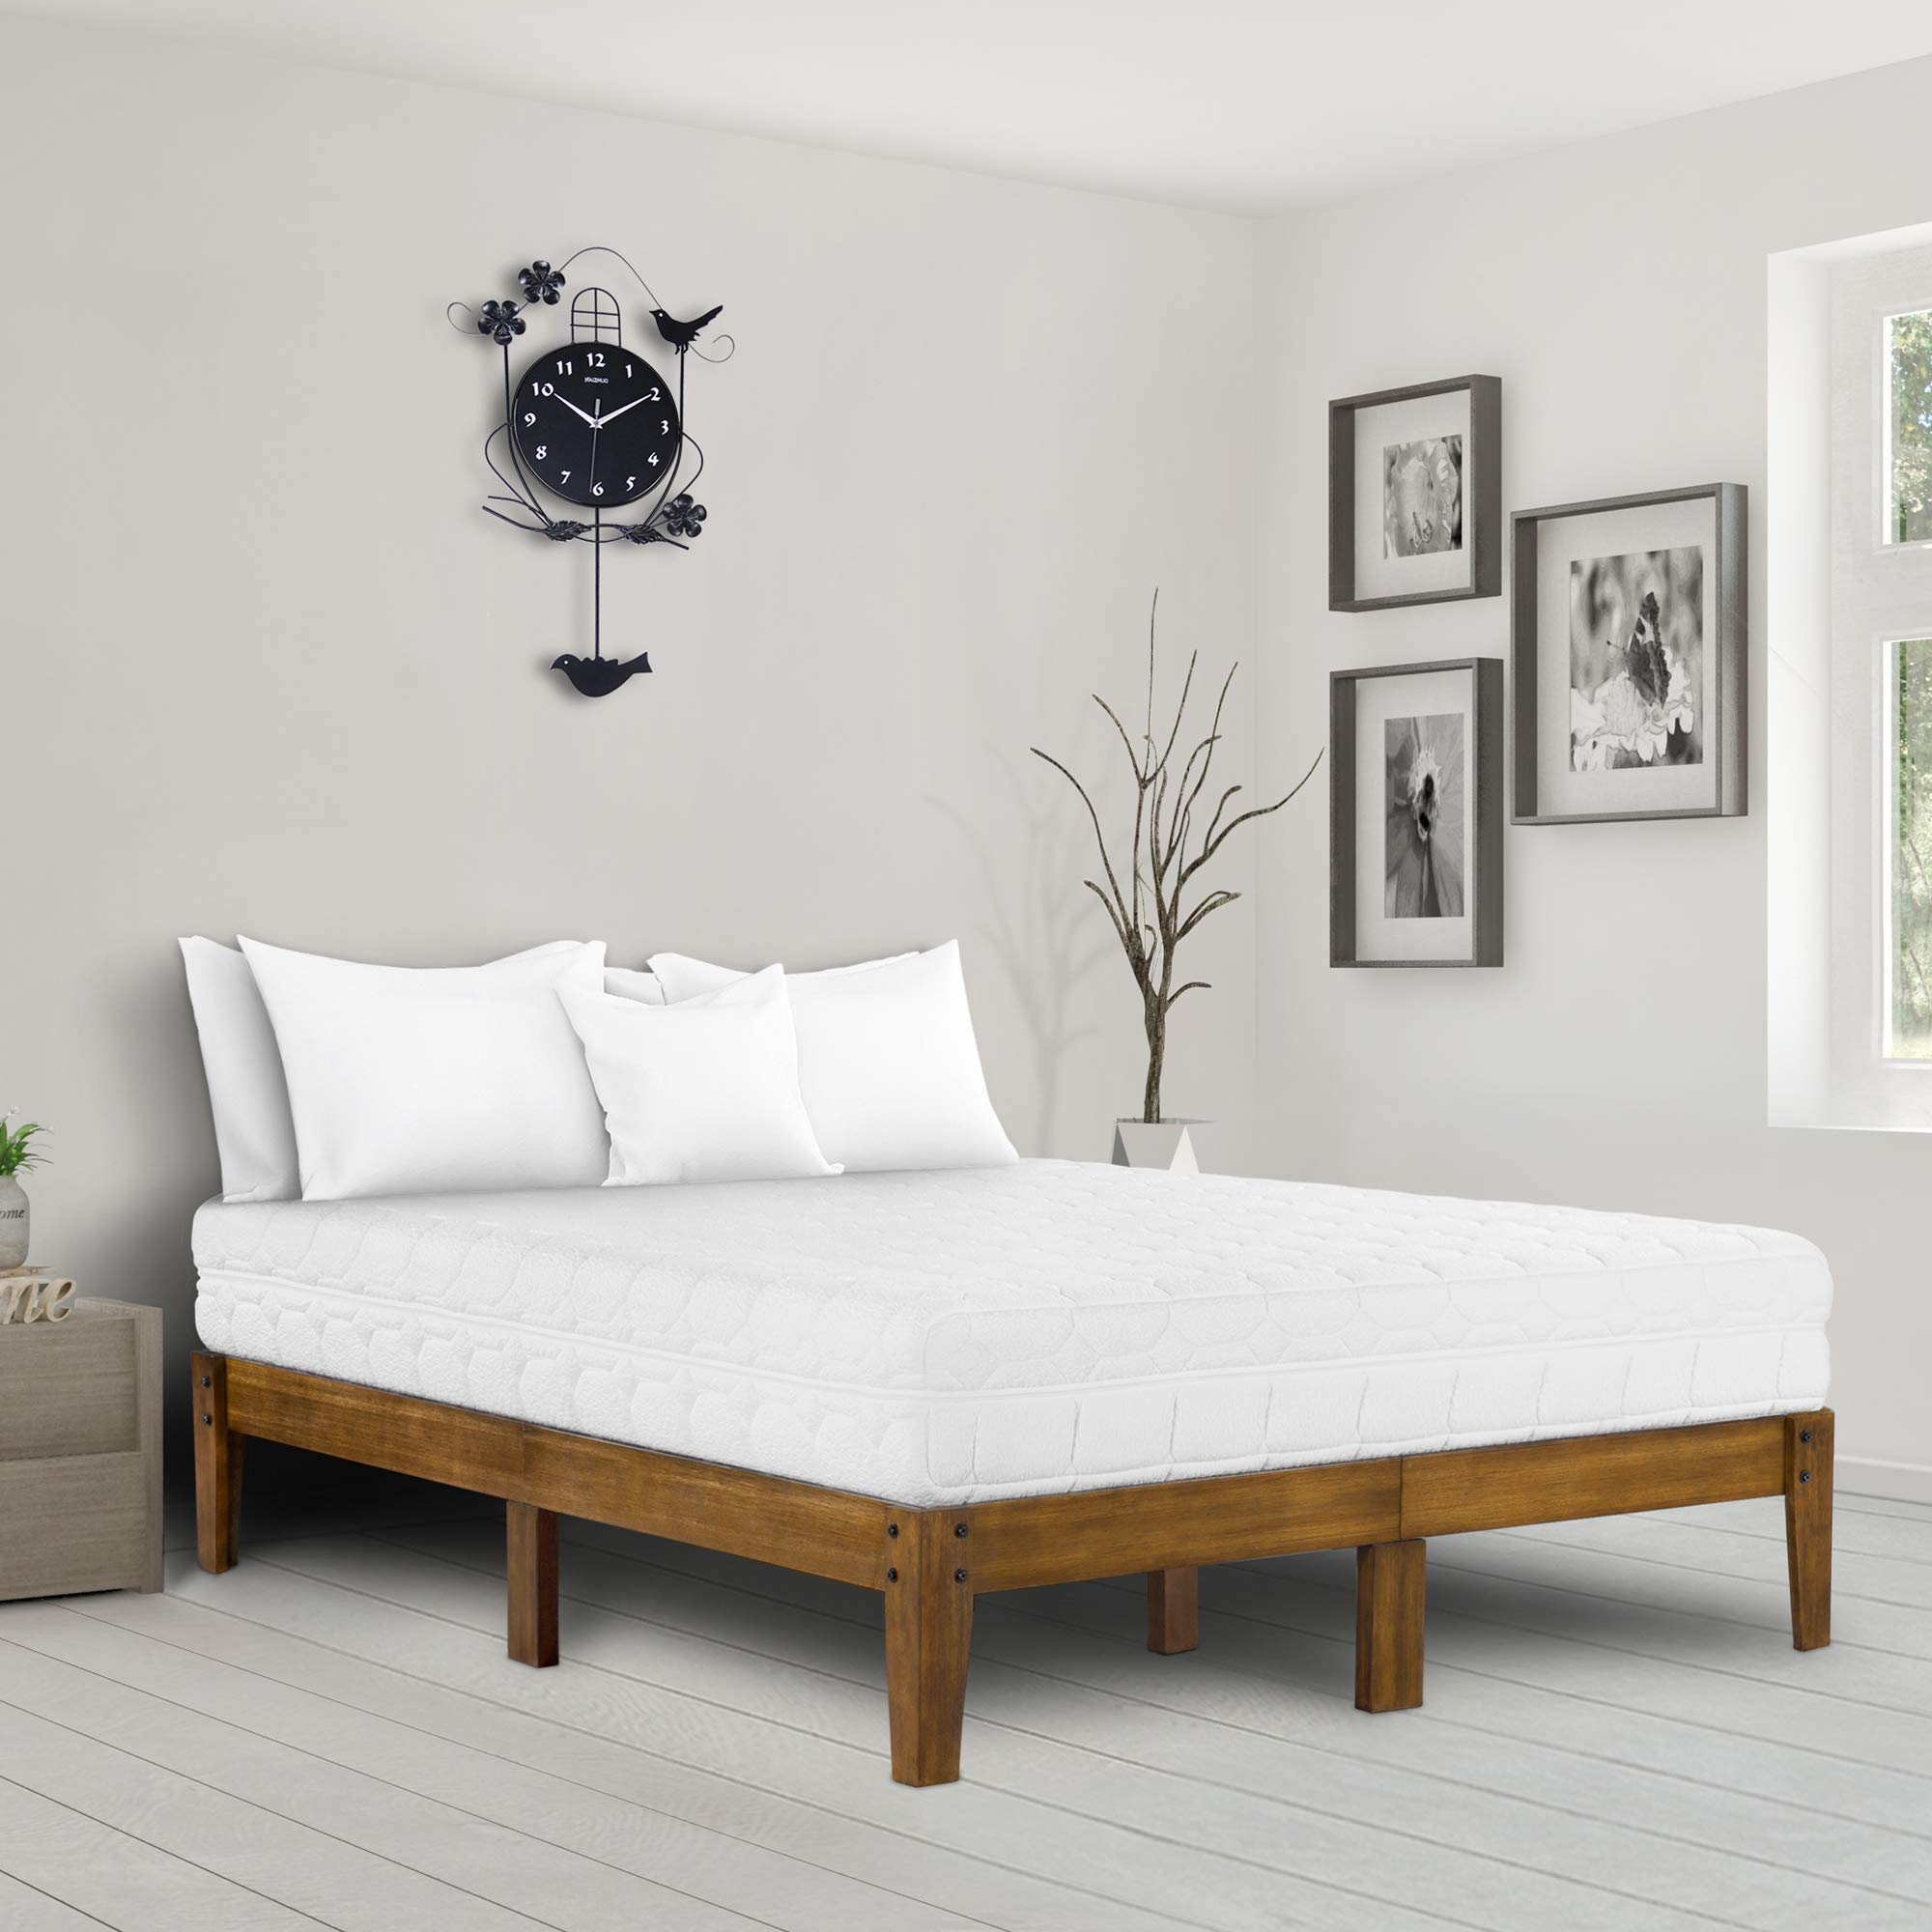 Ecos Living 14 Inch High Rustic Solid Wood Platform Bed with Natural Finish/No Box Spring/No Squeak (Light Brown, Queen)